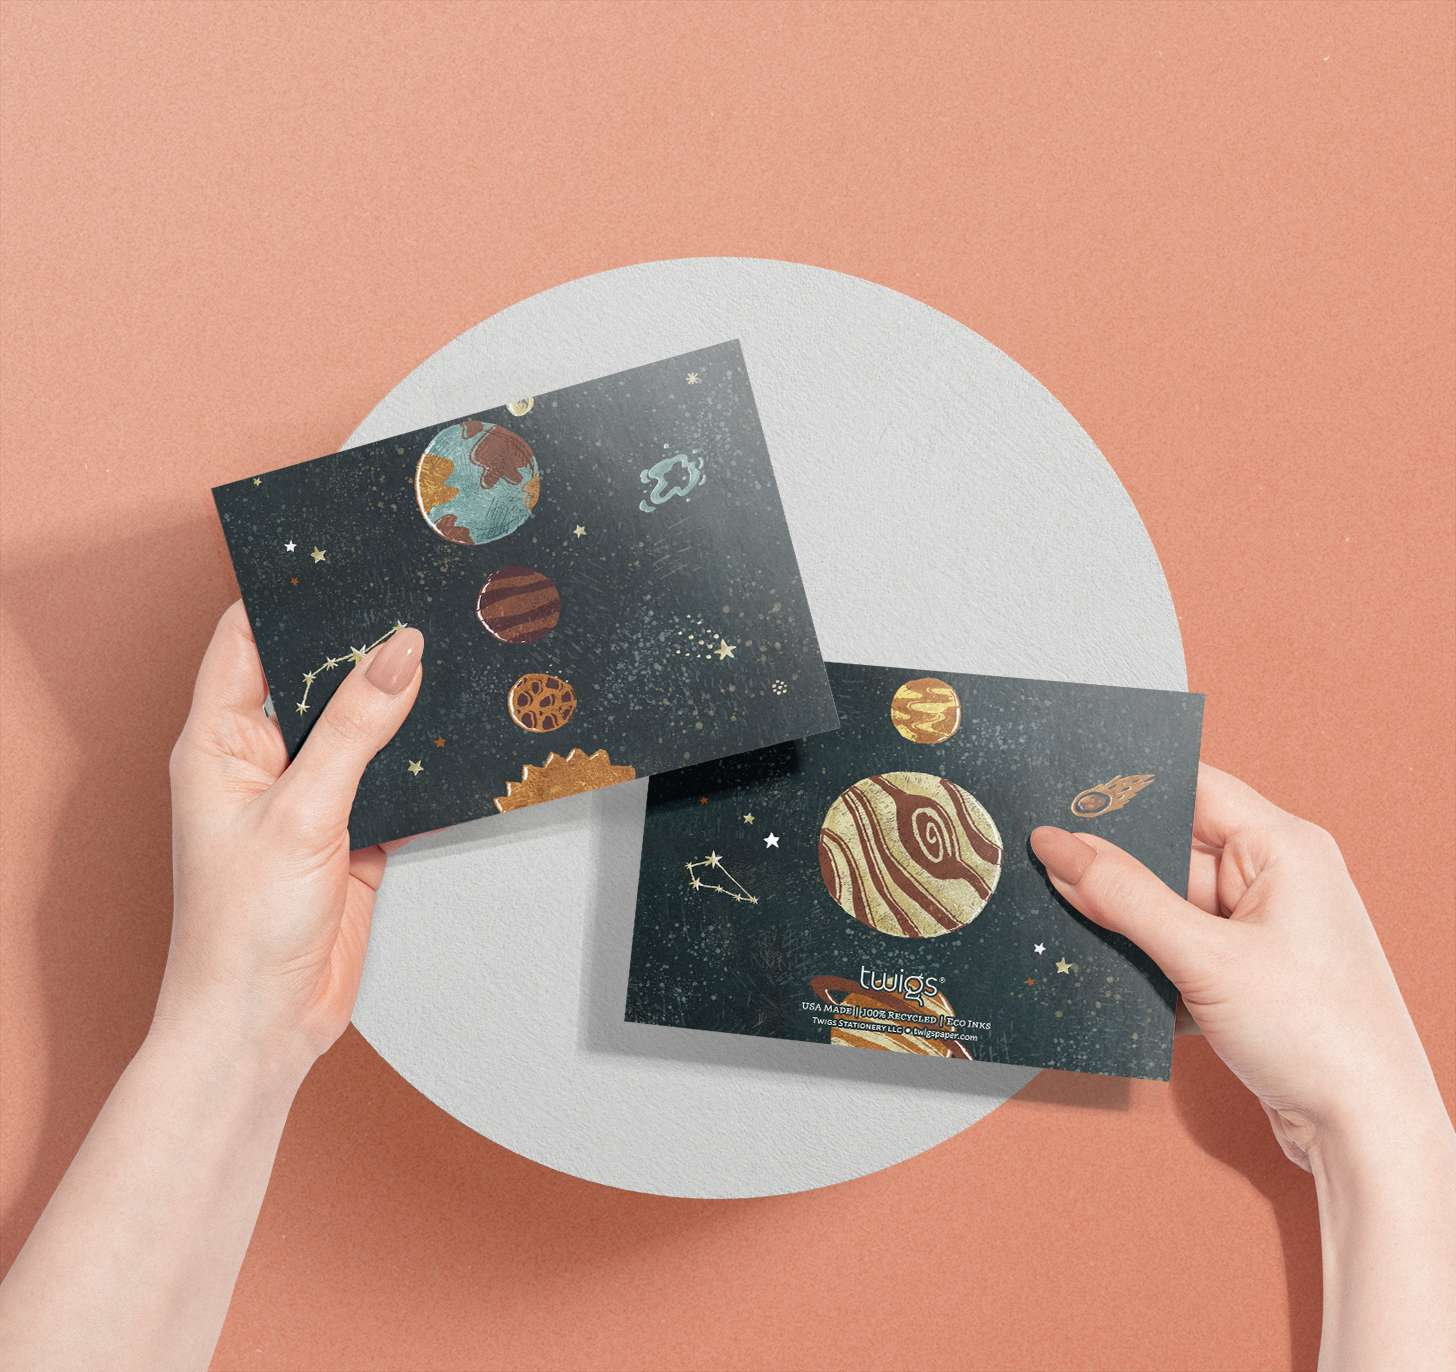 Woman's hand holding solar system planets design card